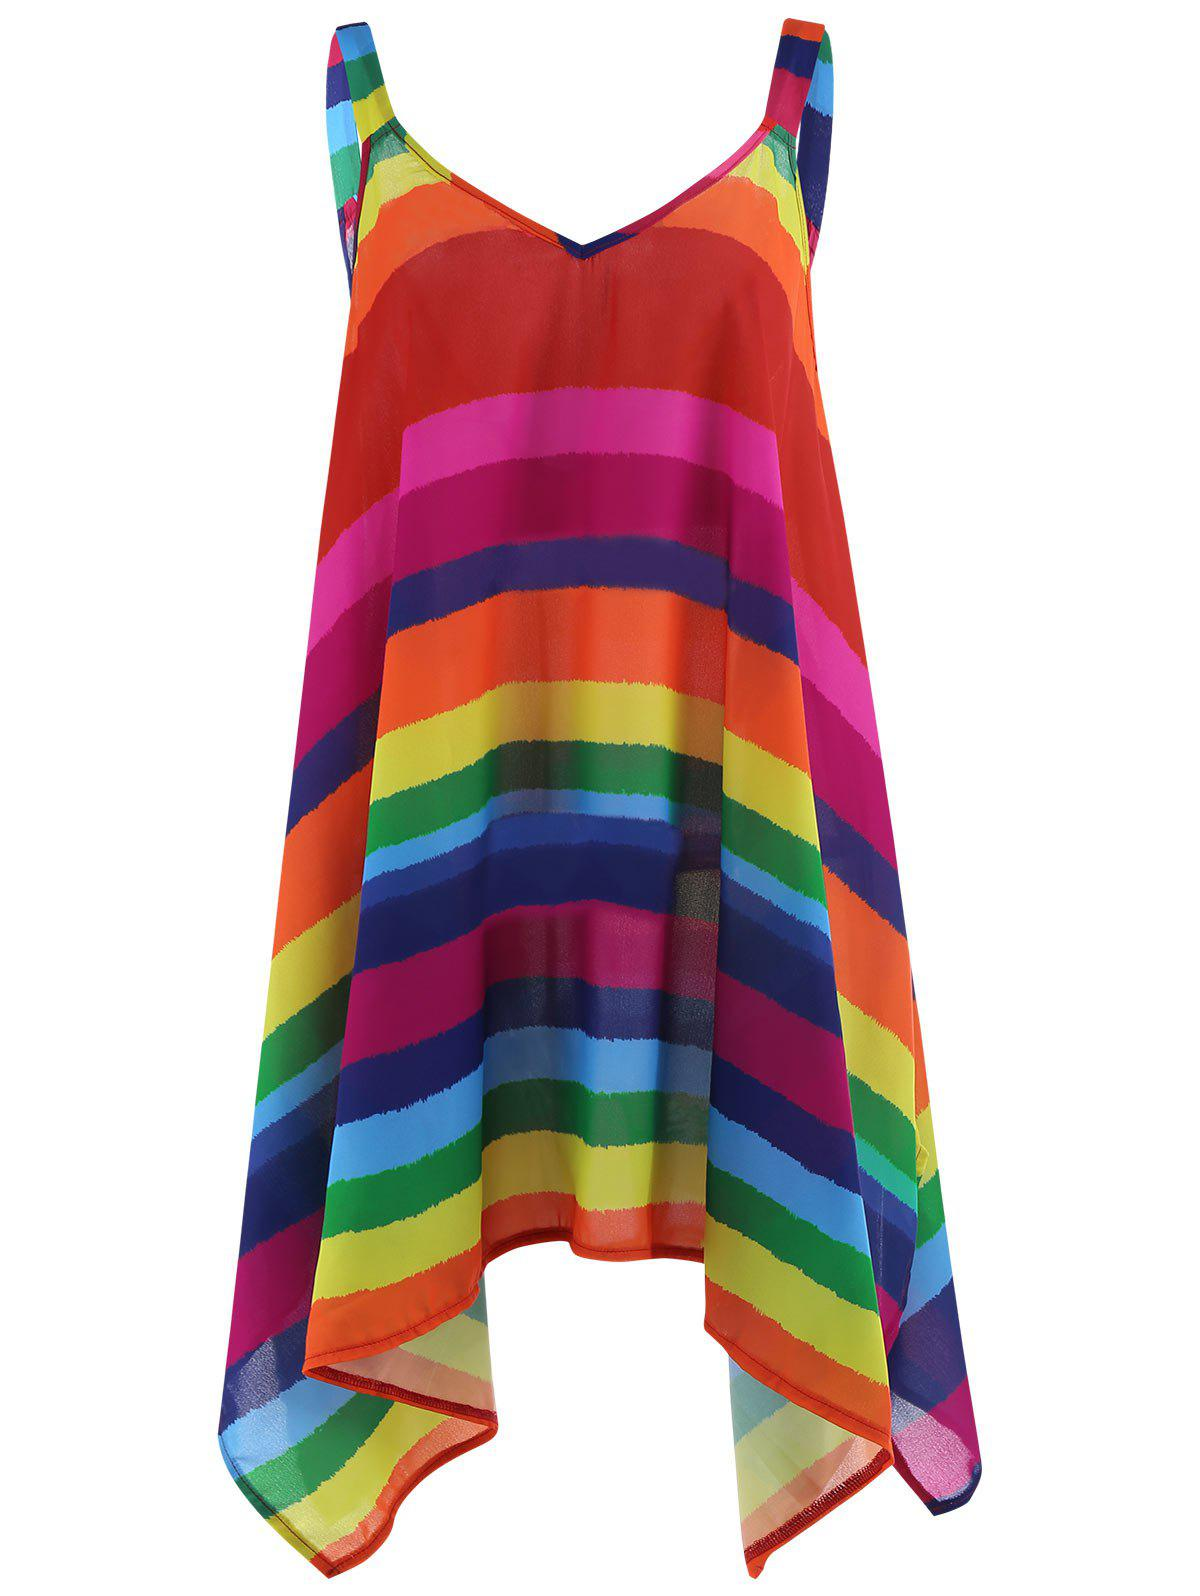 Plus Size Rainbow Stripe Spaghetti Strap Top - multicolorCOLOR 5XL